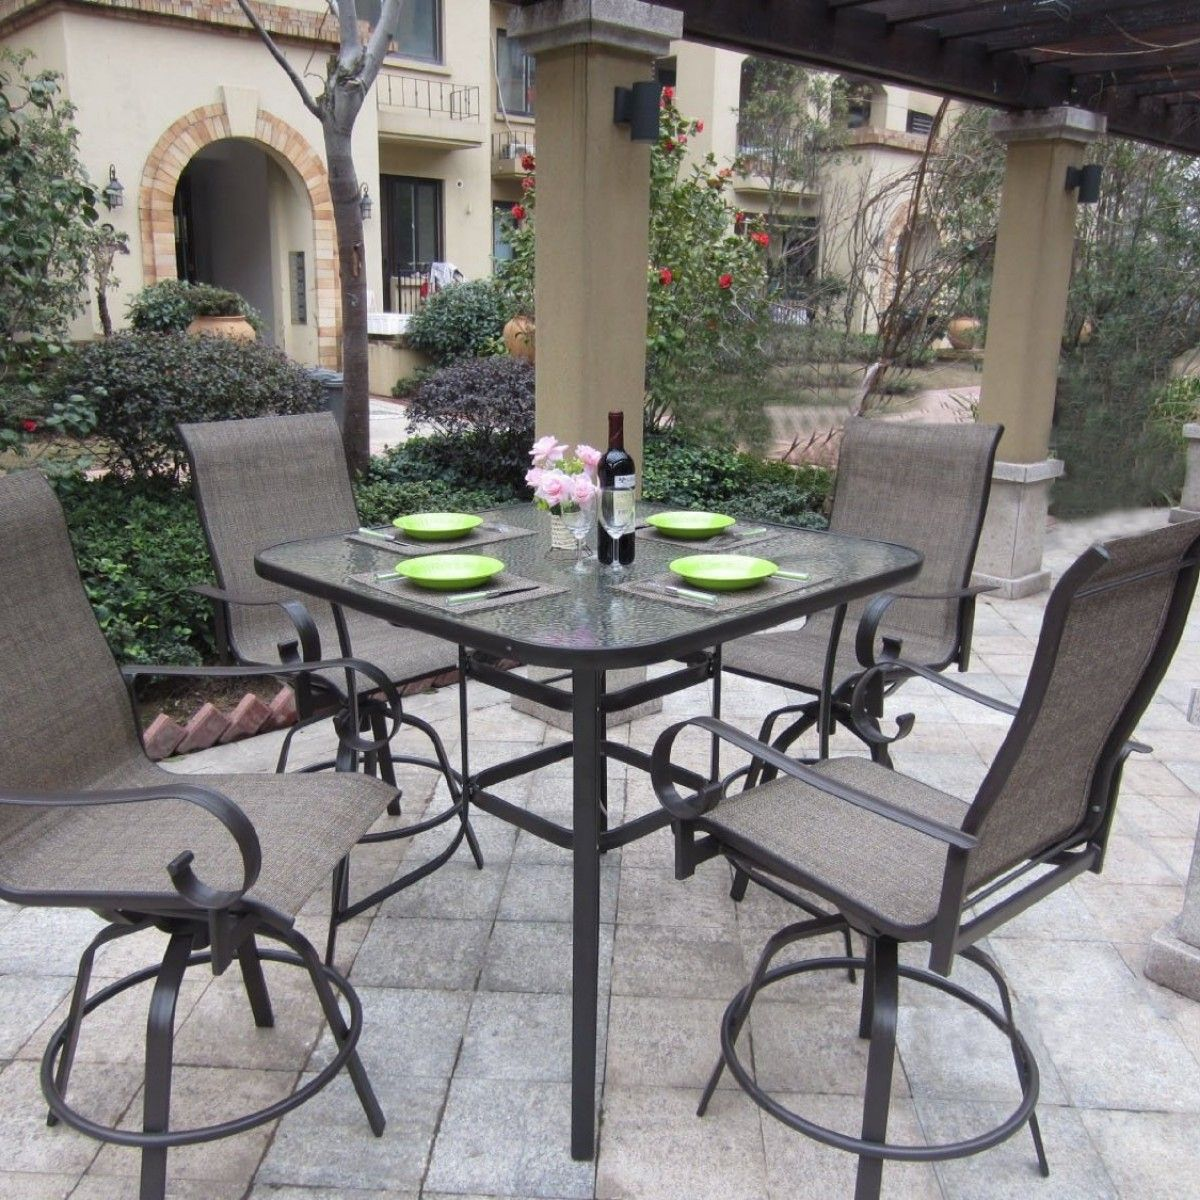 Meijer Patio Furniture Callaway 7 Piece Padded Sling Outdoor Patio Set  $349.99 At Meijer | Patio Furniture Ideas | Pinterest | Patios and Furniture  ideas - Meijer Patio Furniture Callaway 7 Piece Padded Sling Outdoor Patio